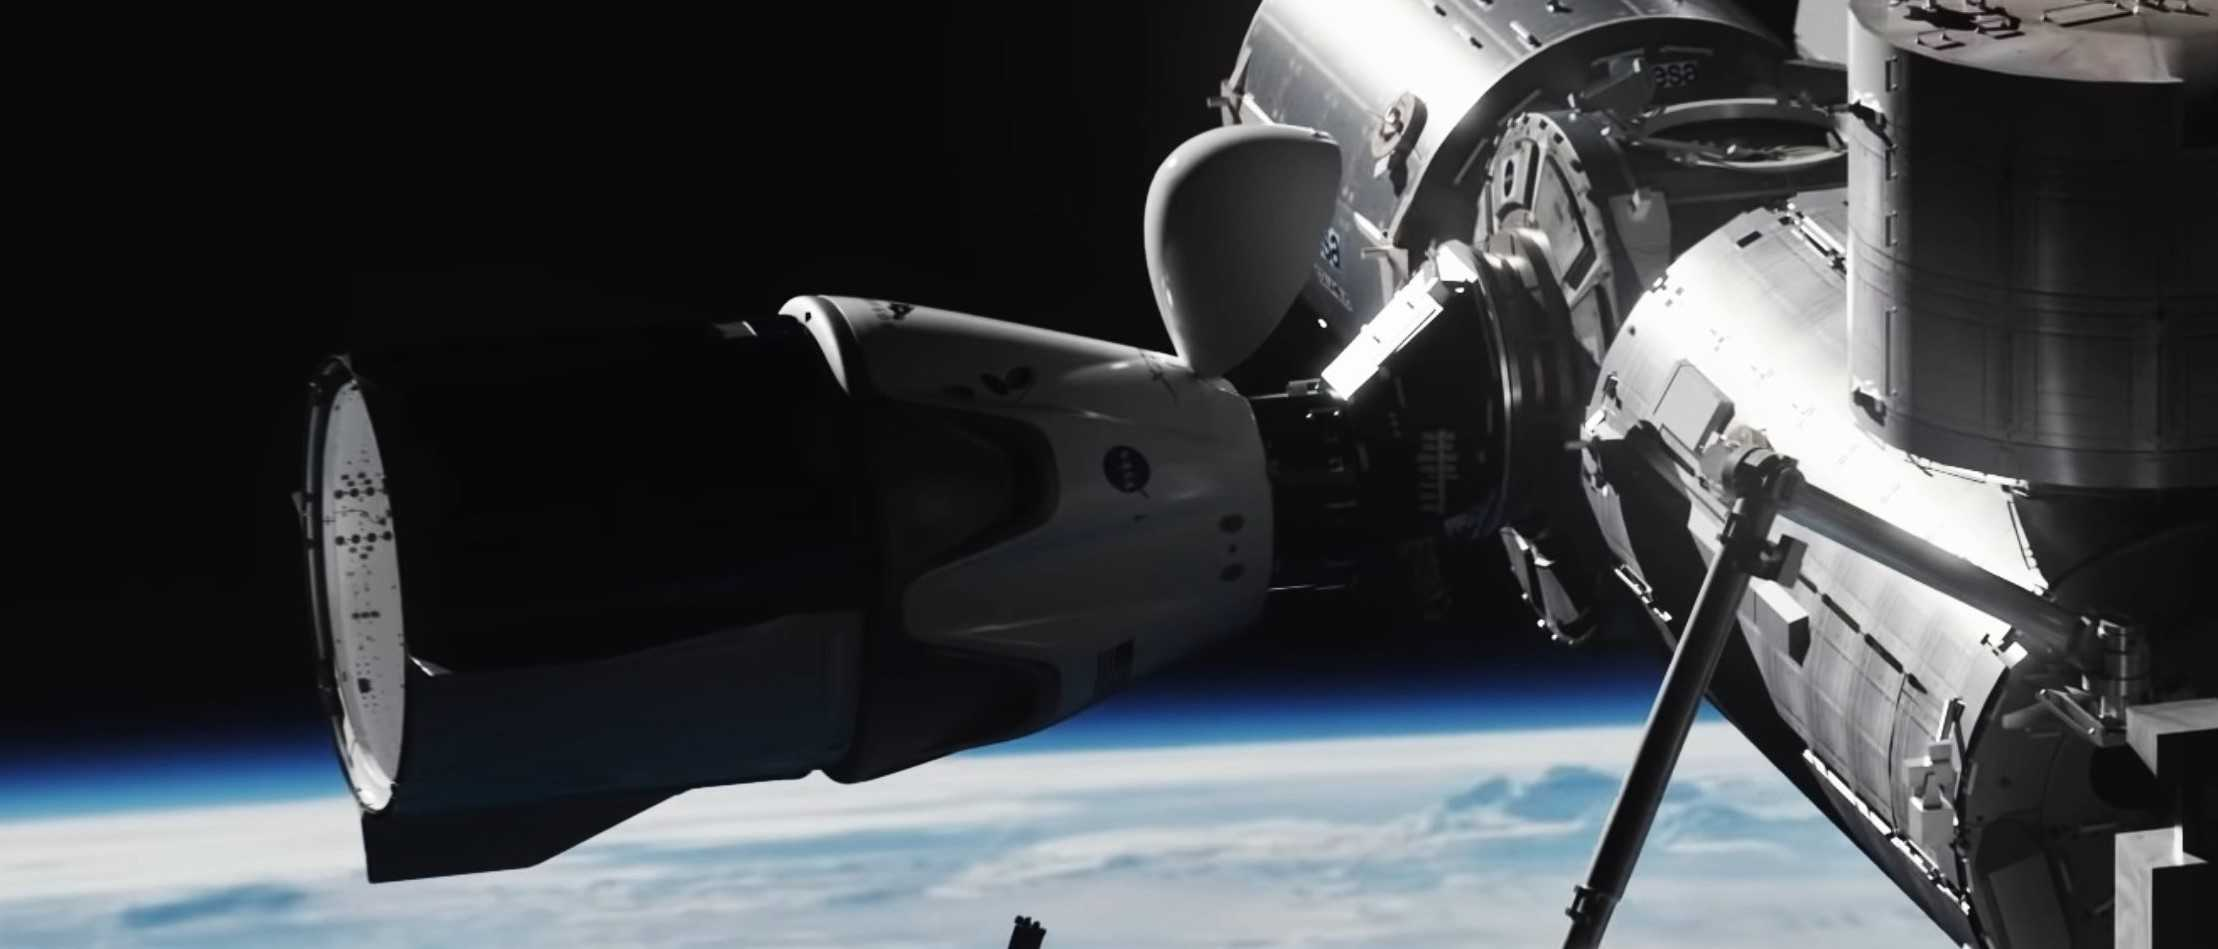 Crew Dragon Demo-2 animation Dec 2019 (SpaceX) ISS 6 crop (c)